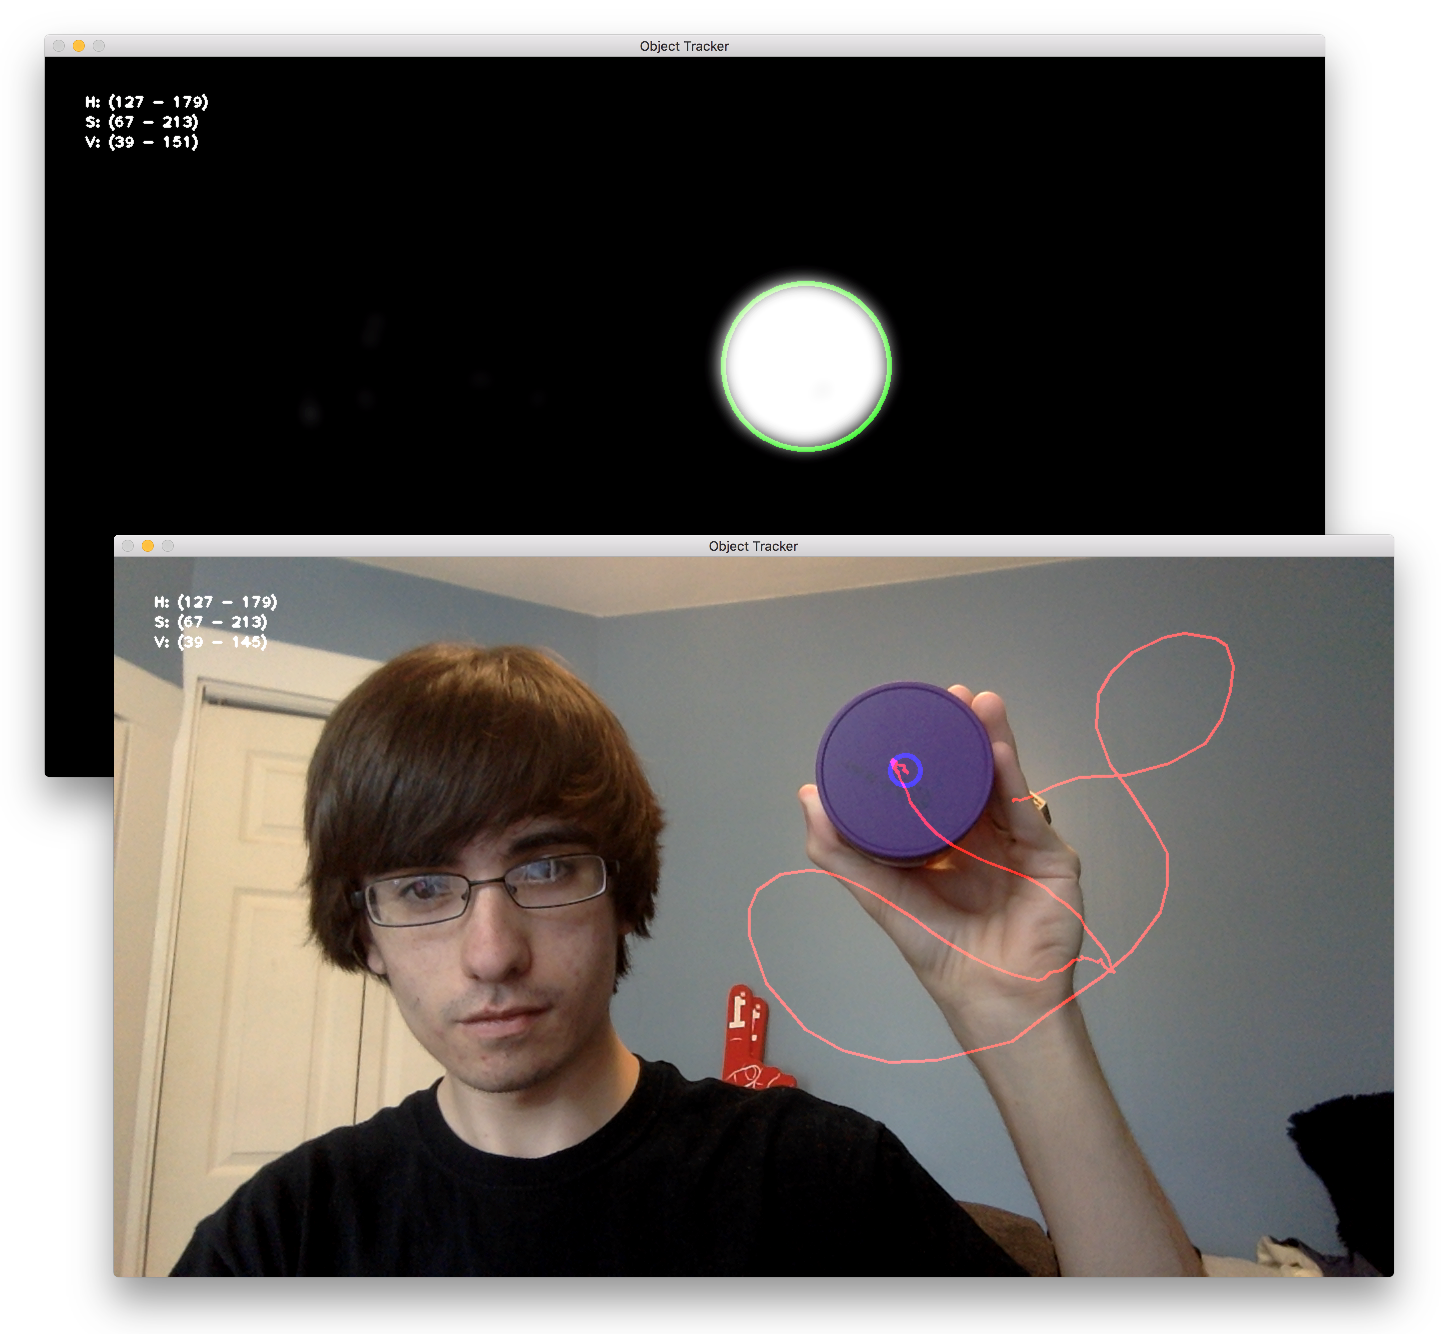 Color-Based Object Detection and Tracking